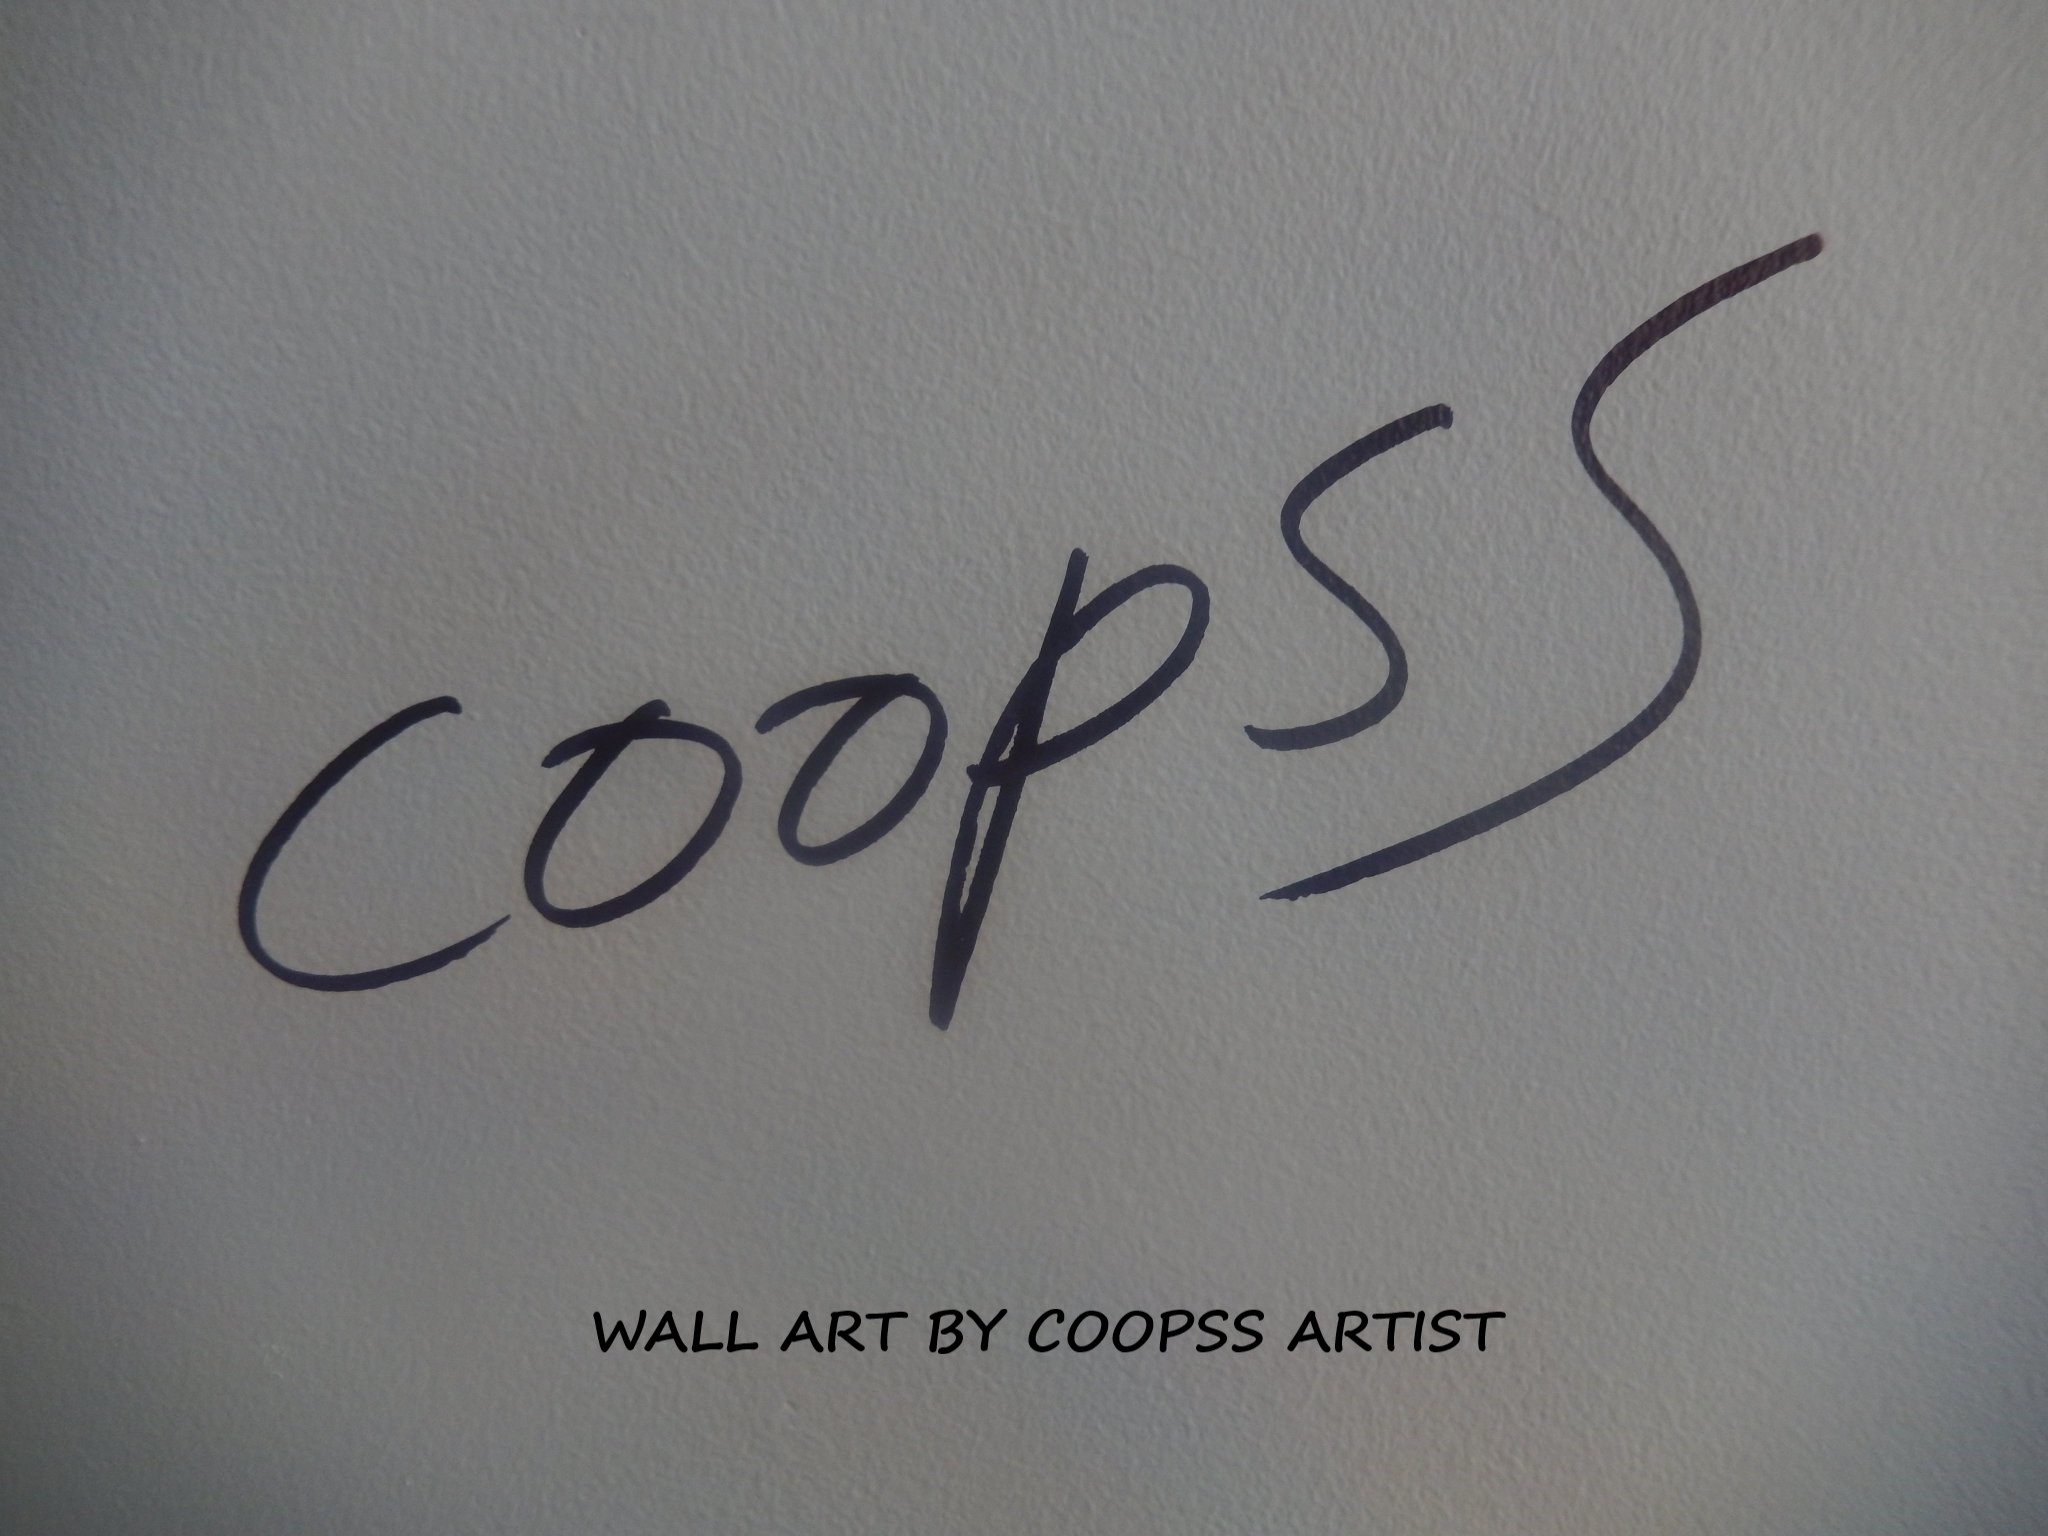 Wall Art by COOPSS Artist